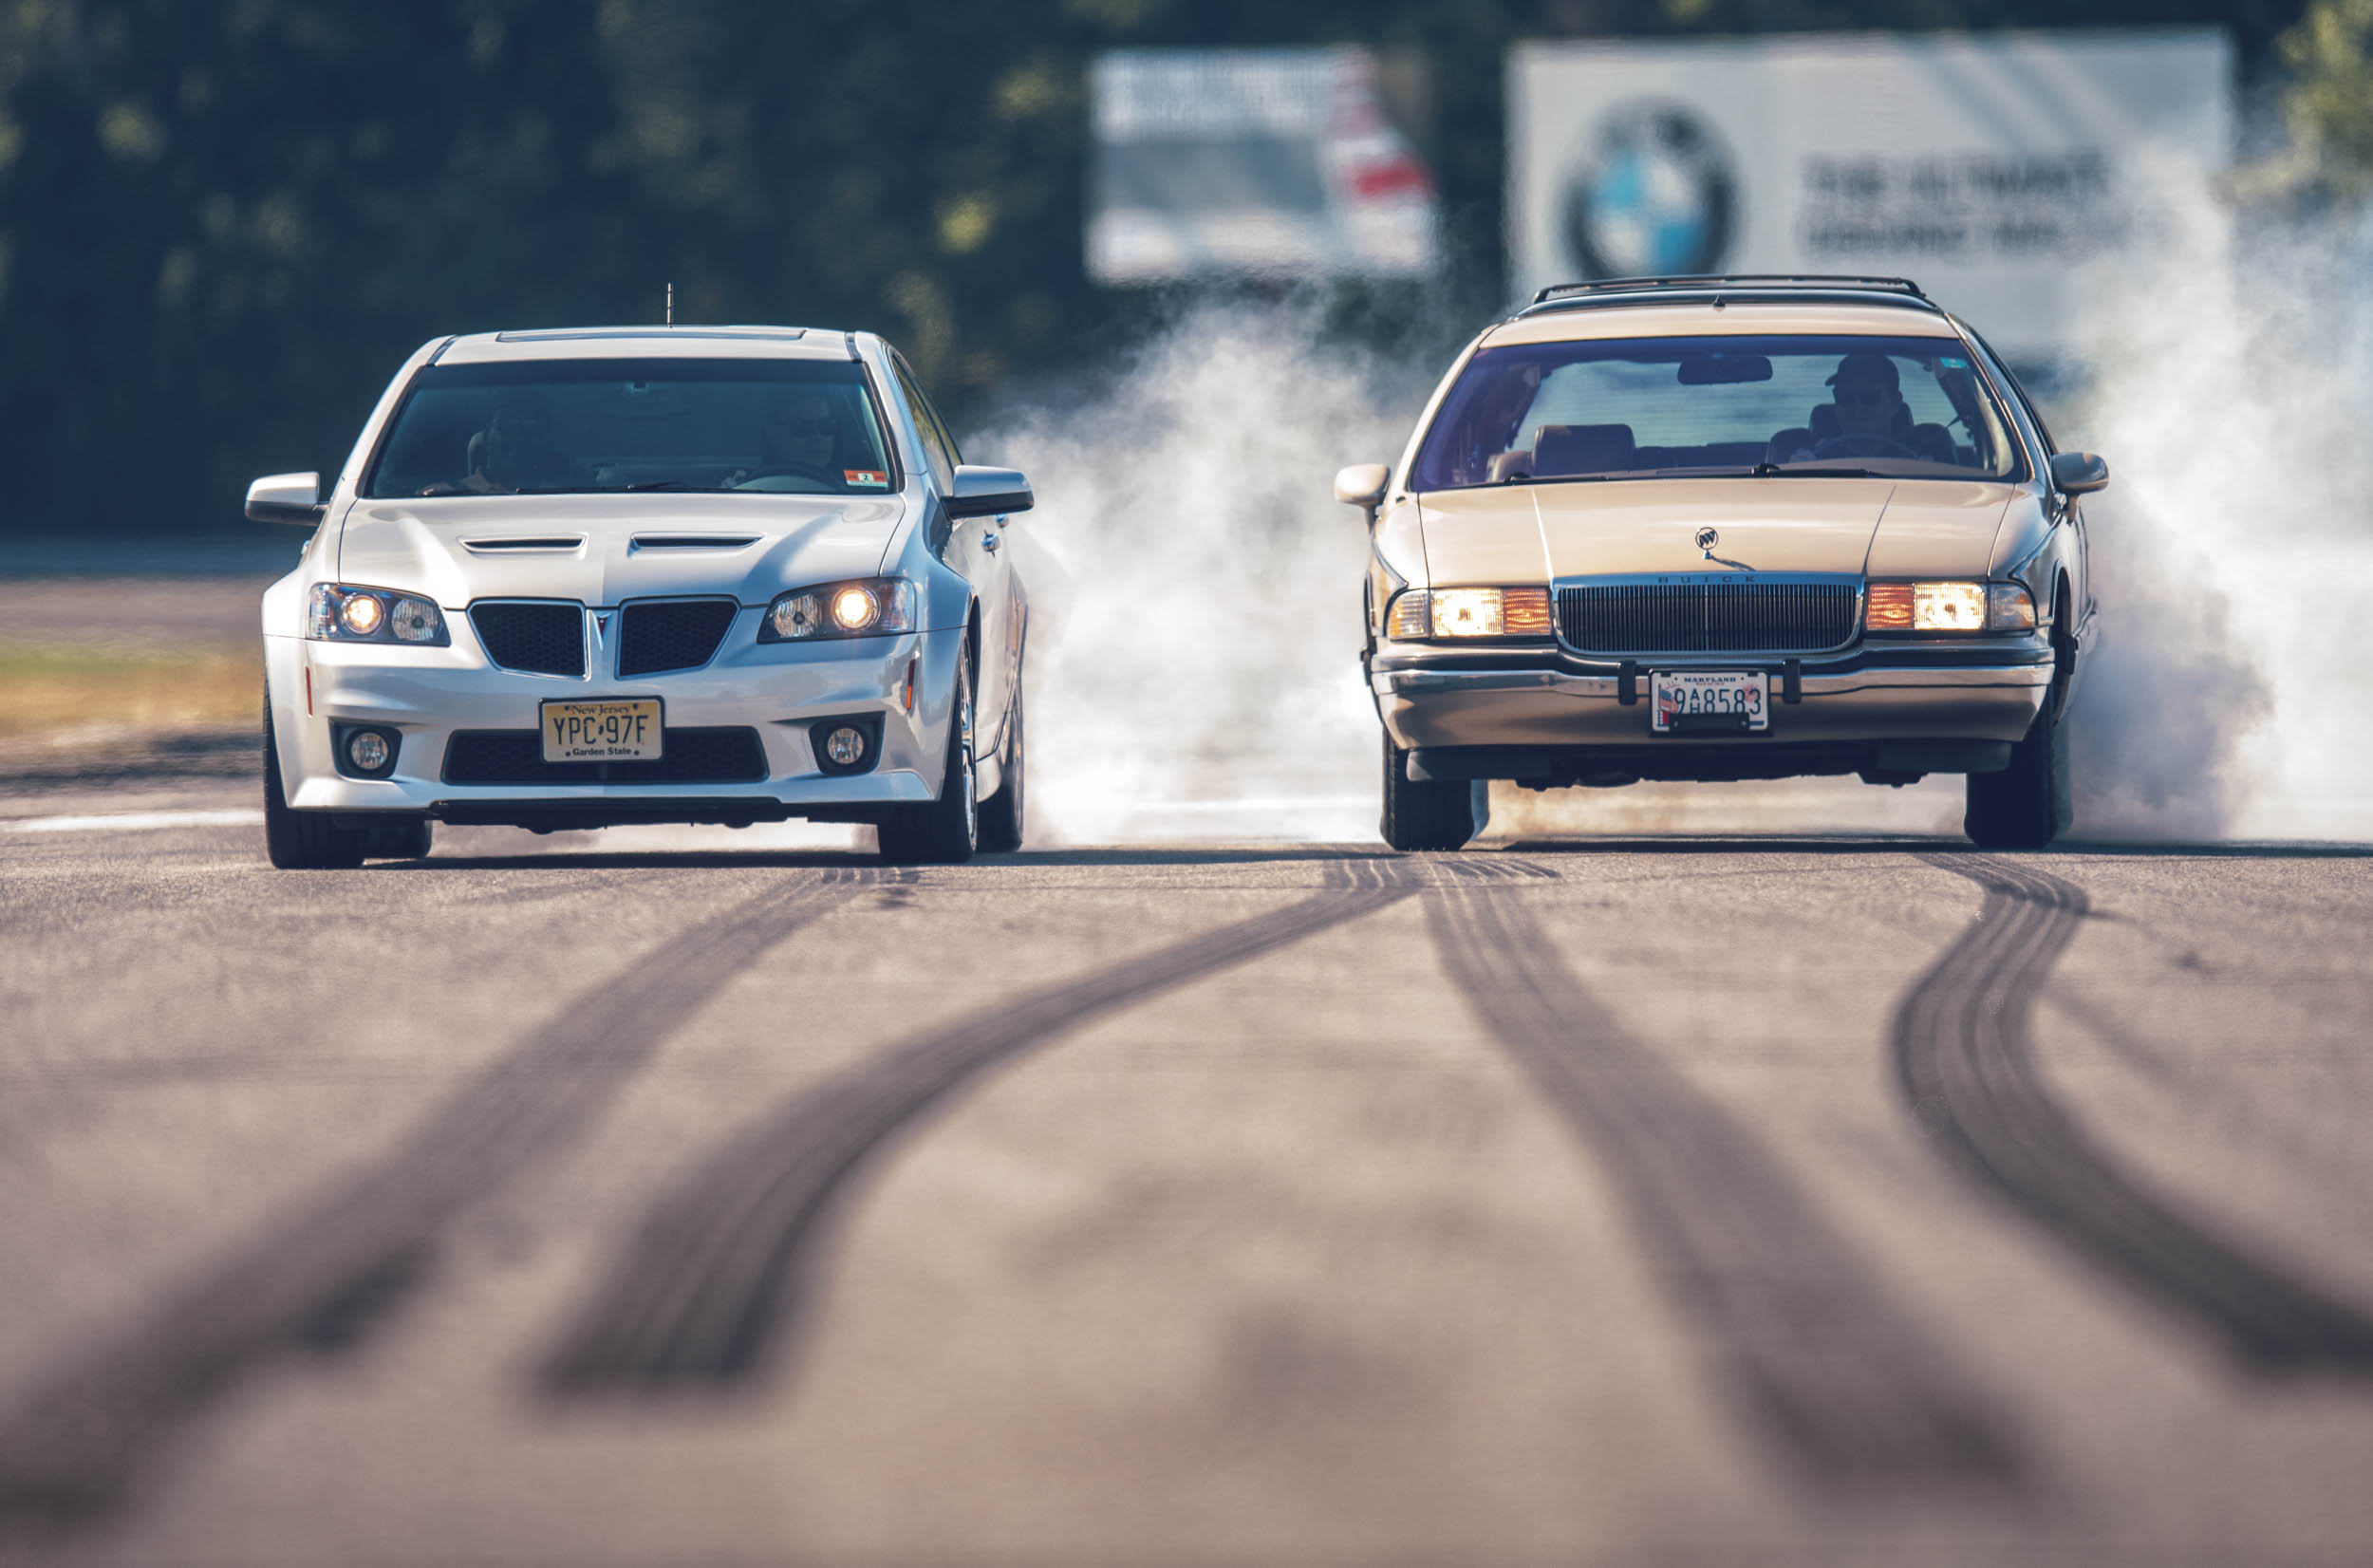 The Pontiac G8 and the Buick Roadmaster prove that beaks and blue-hairs can lay patches at Lime Rock if you give it all they've got.